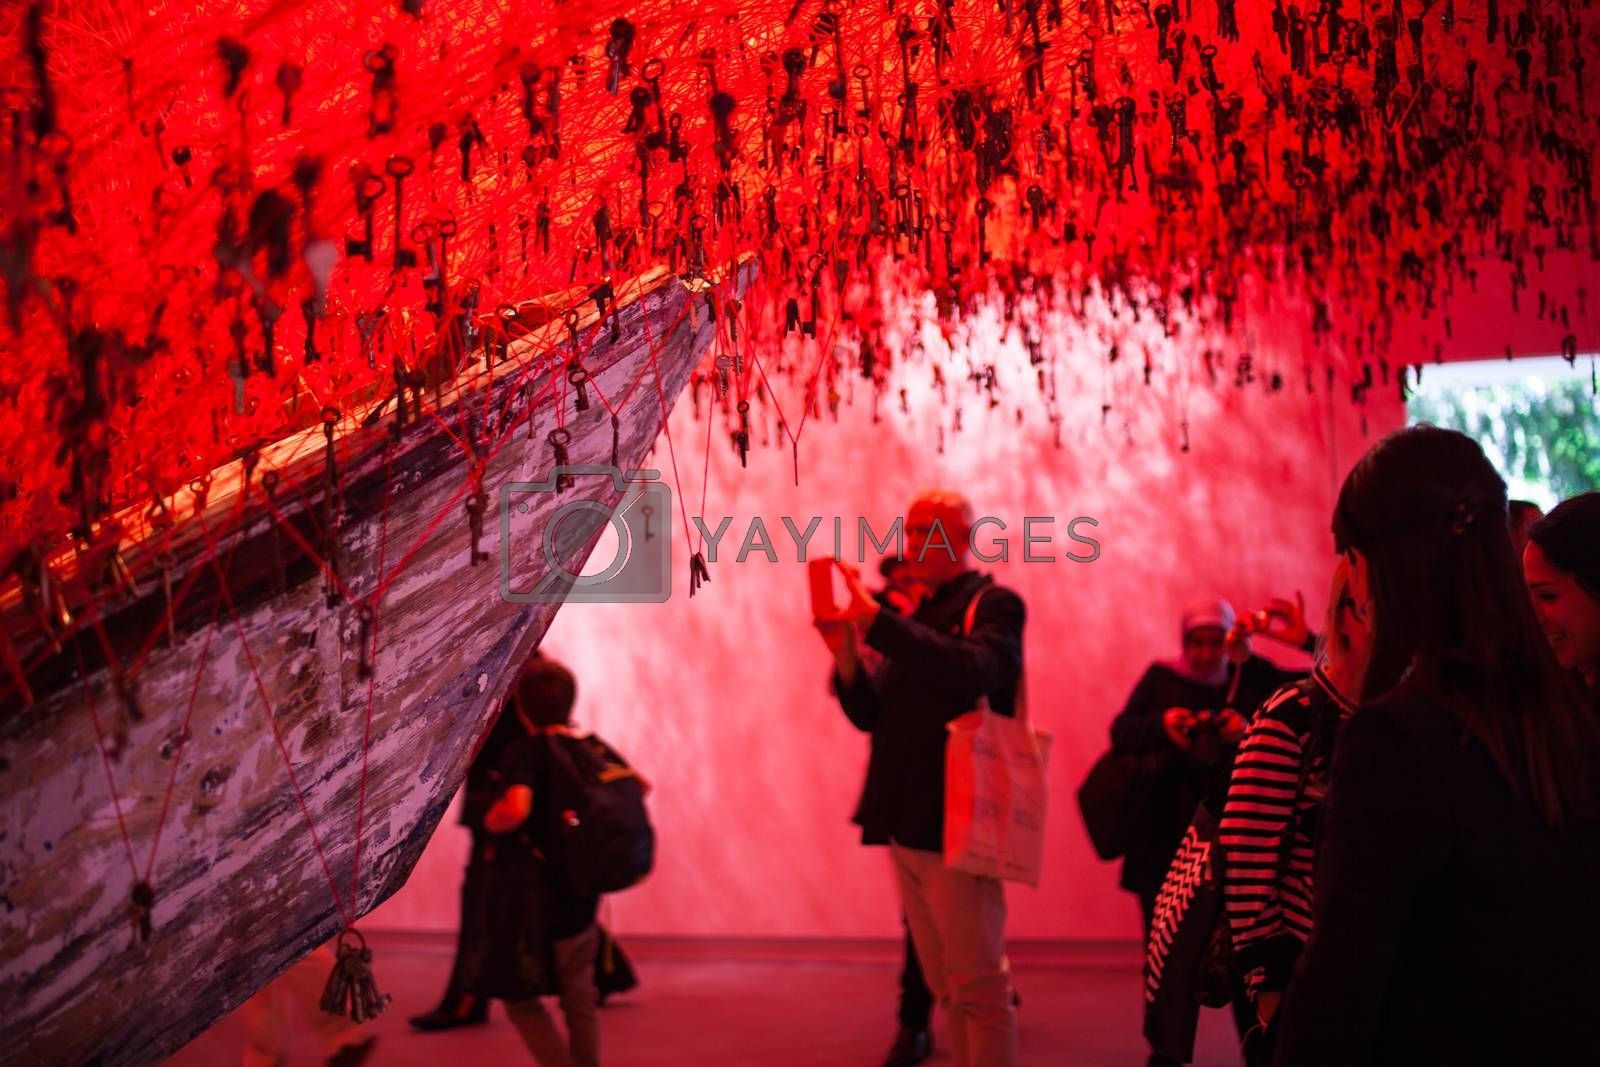 """VENICE, ITALY - MAY 06: """"The Key in the Hand""""  installation by Chiharu Shiota in the Japan National Pavilion at the 56 th Art exhibition of Venice biennale on May 06, 2015"""